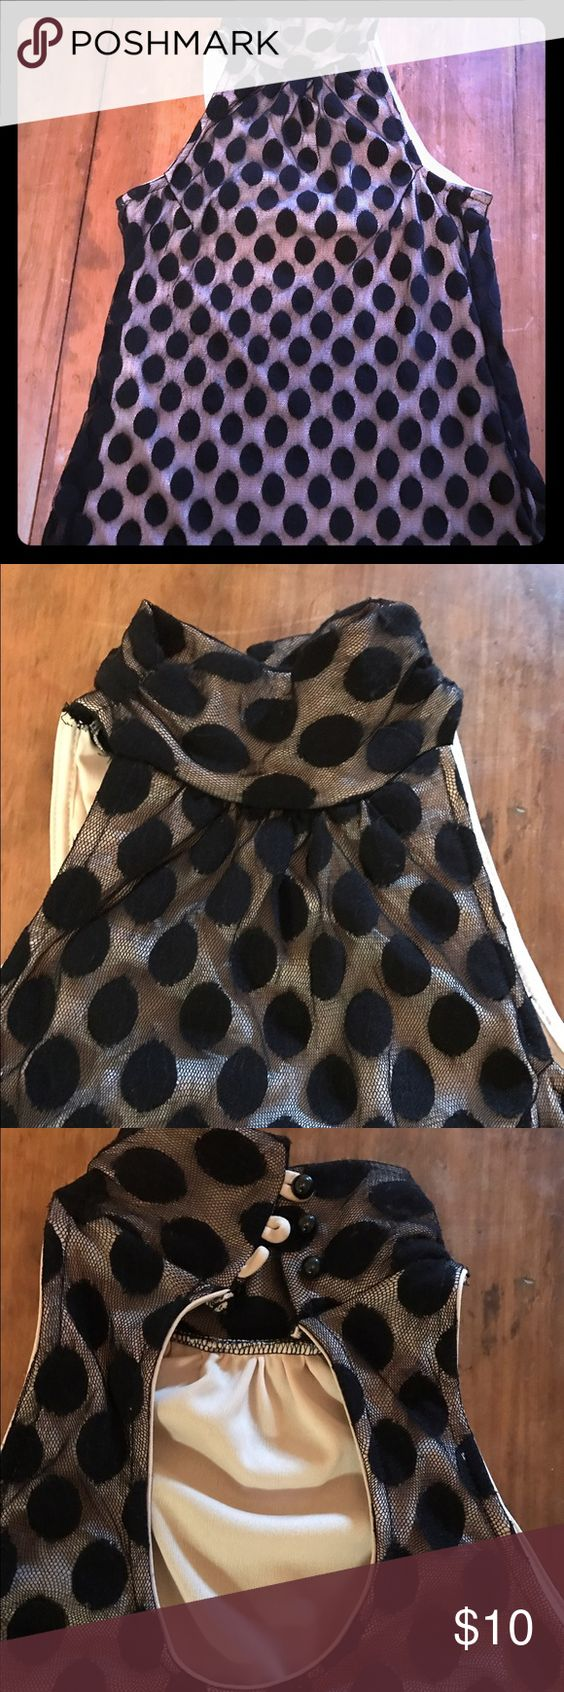 Formal/casual black polka dot top size S Perfect top to tuck into high waisted pants/elegant skirt for upcoming holidays parties or for date night with nice jeans. Worn once for a homecoming party Tops Blouses